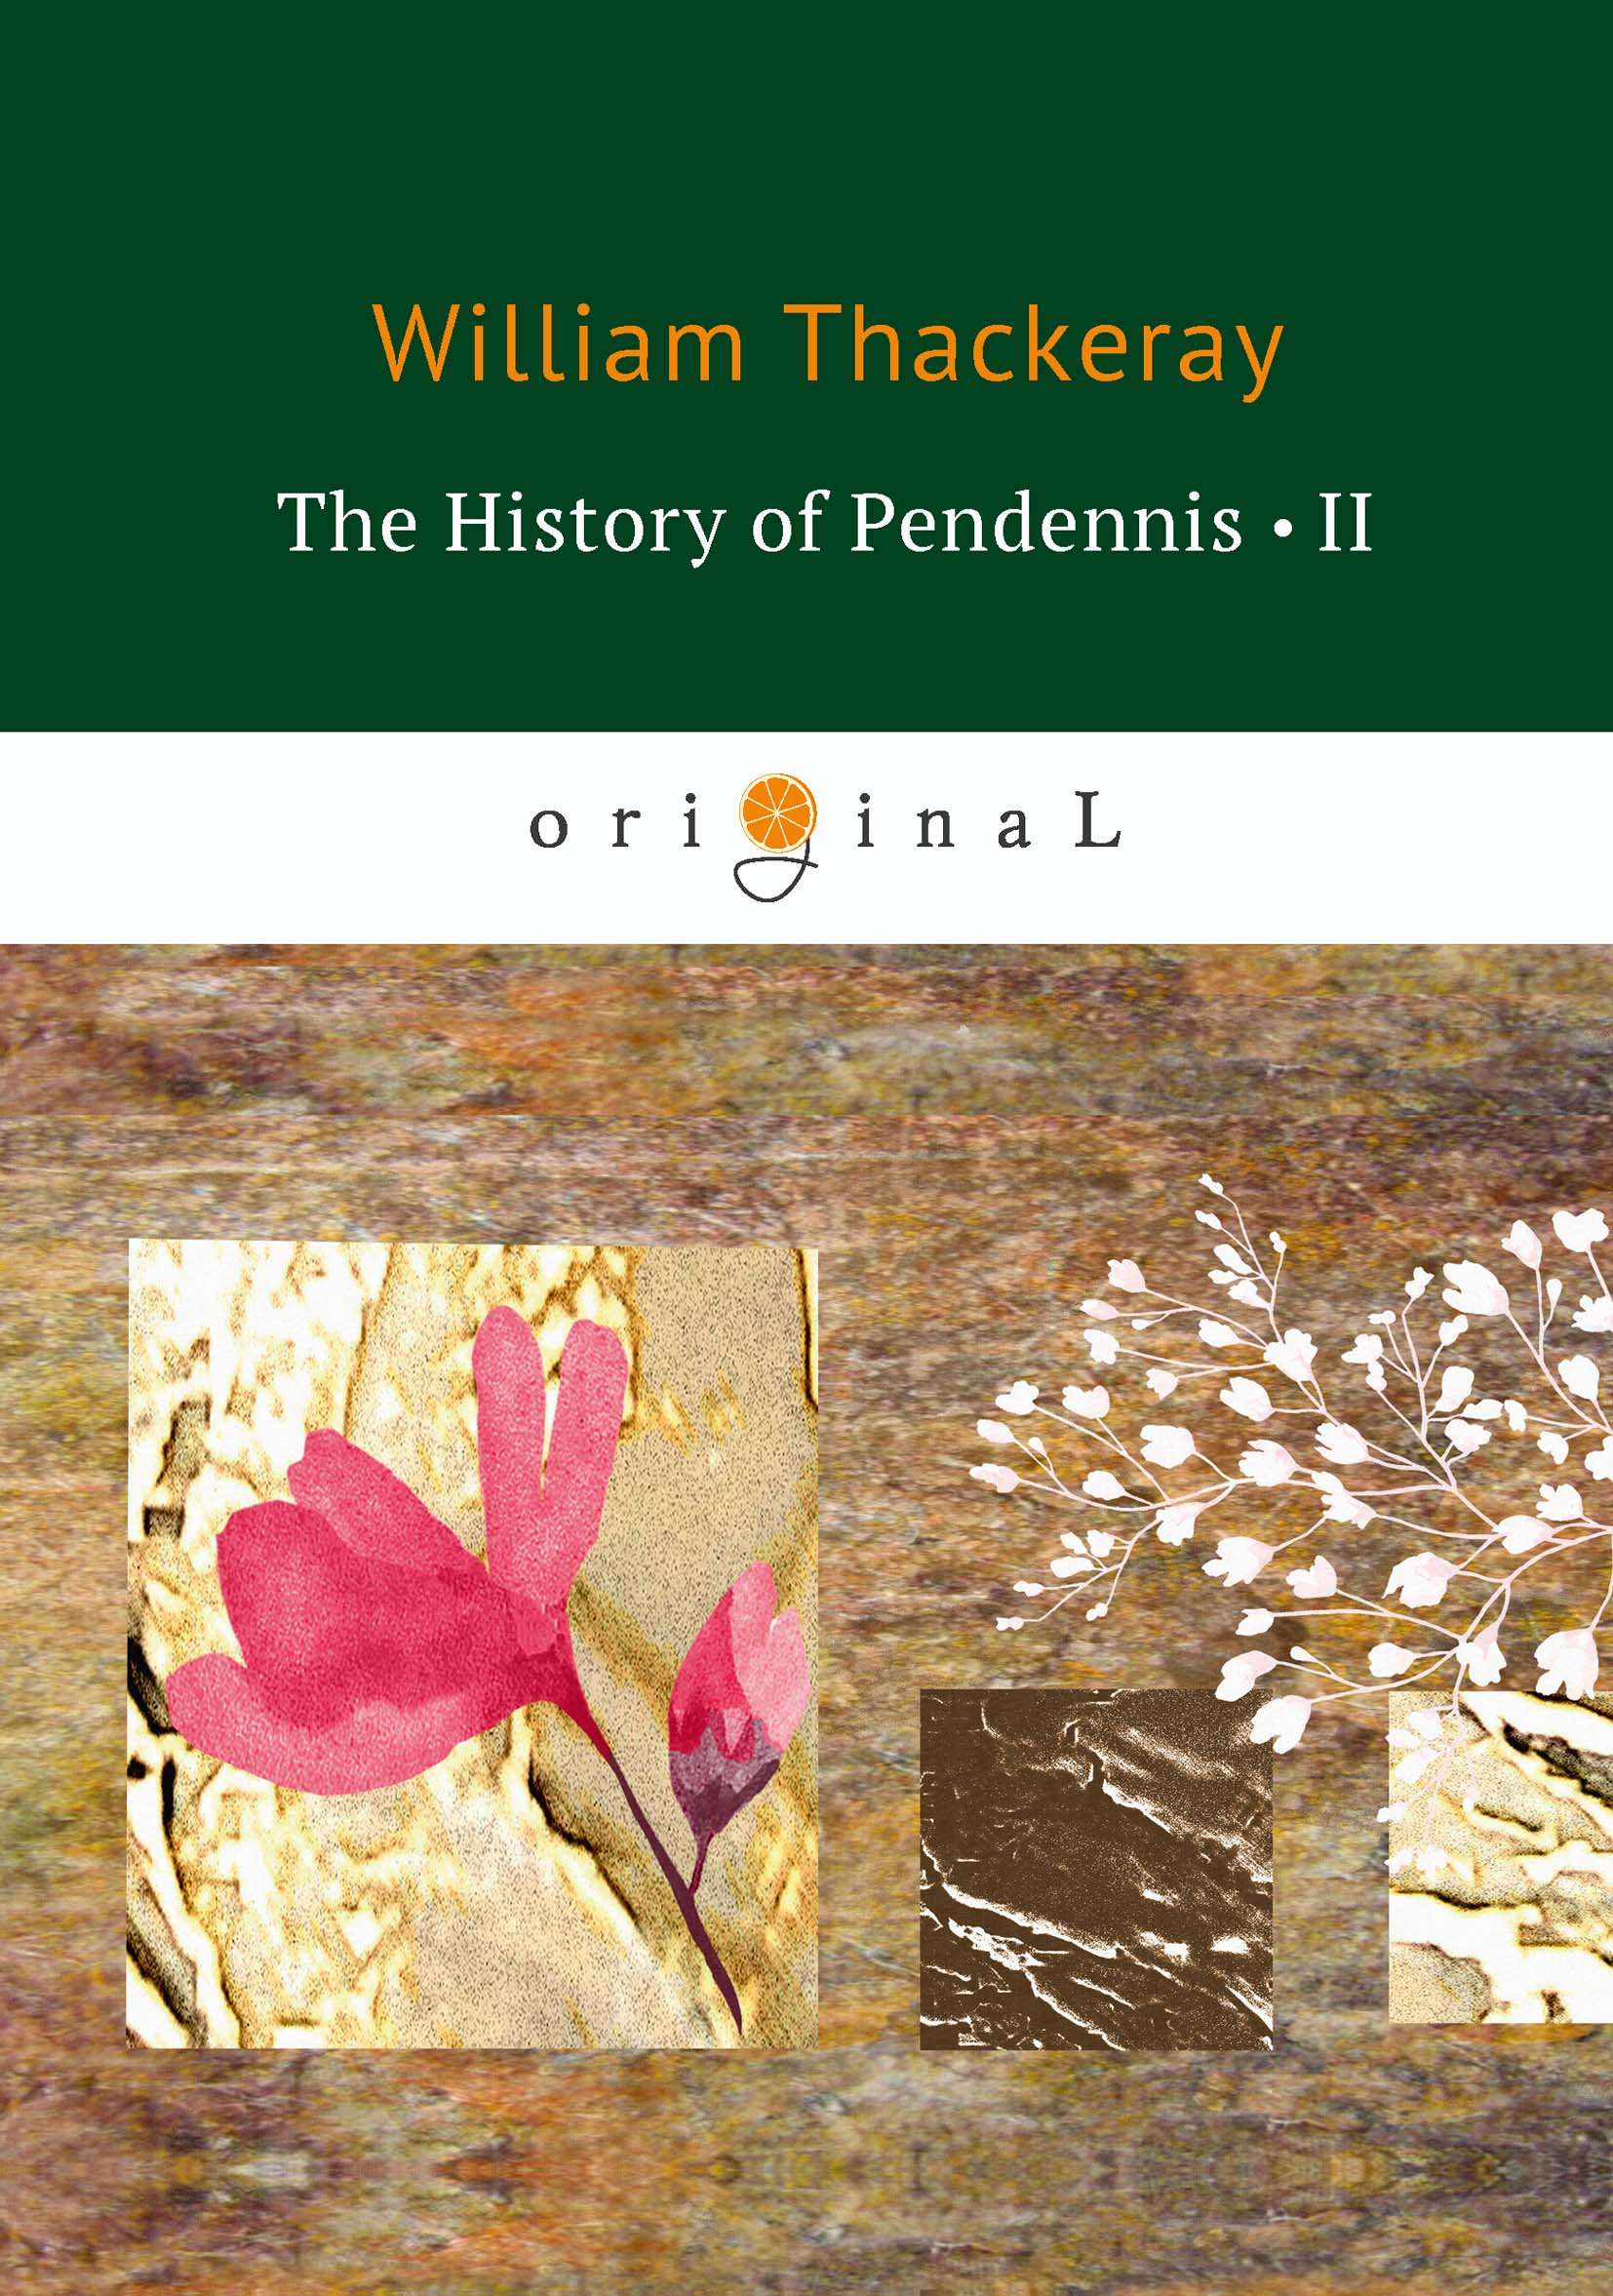 W. Thackeray The History of Pendennis II thackeray william makepeace the history of pendennis 2